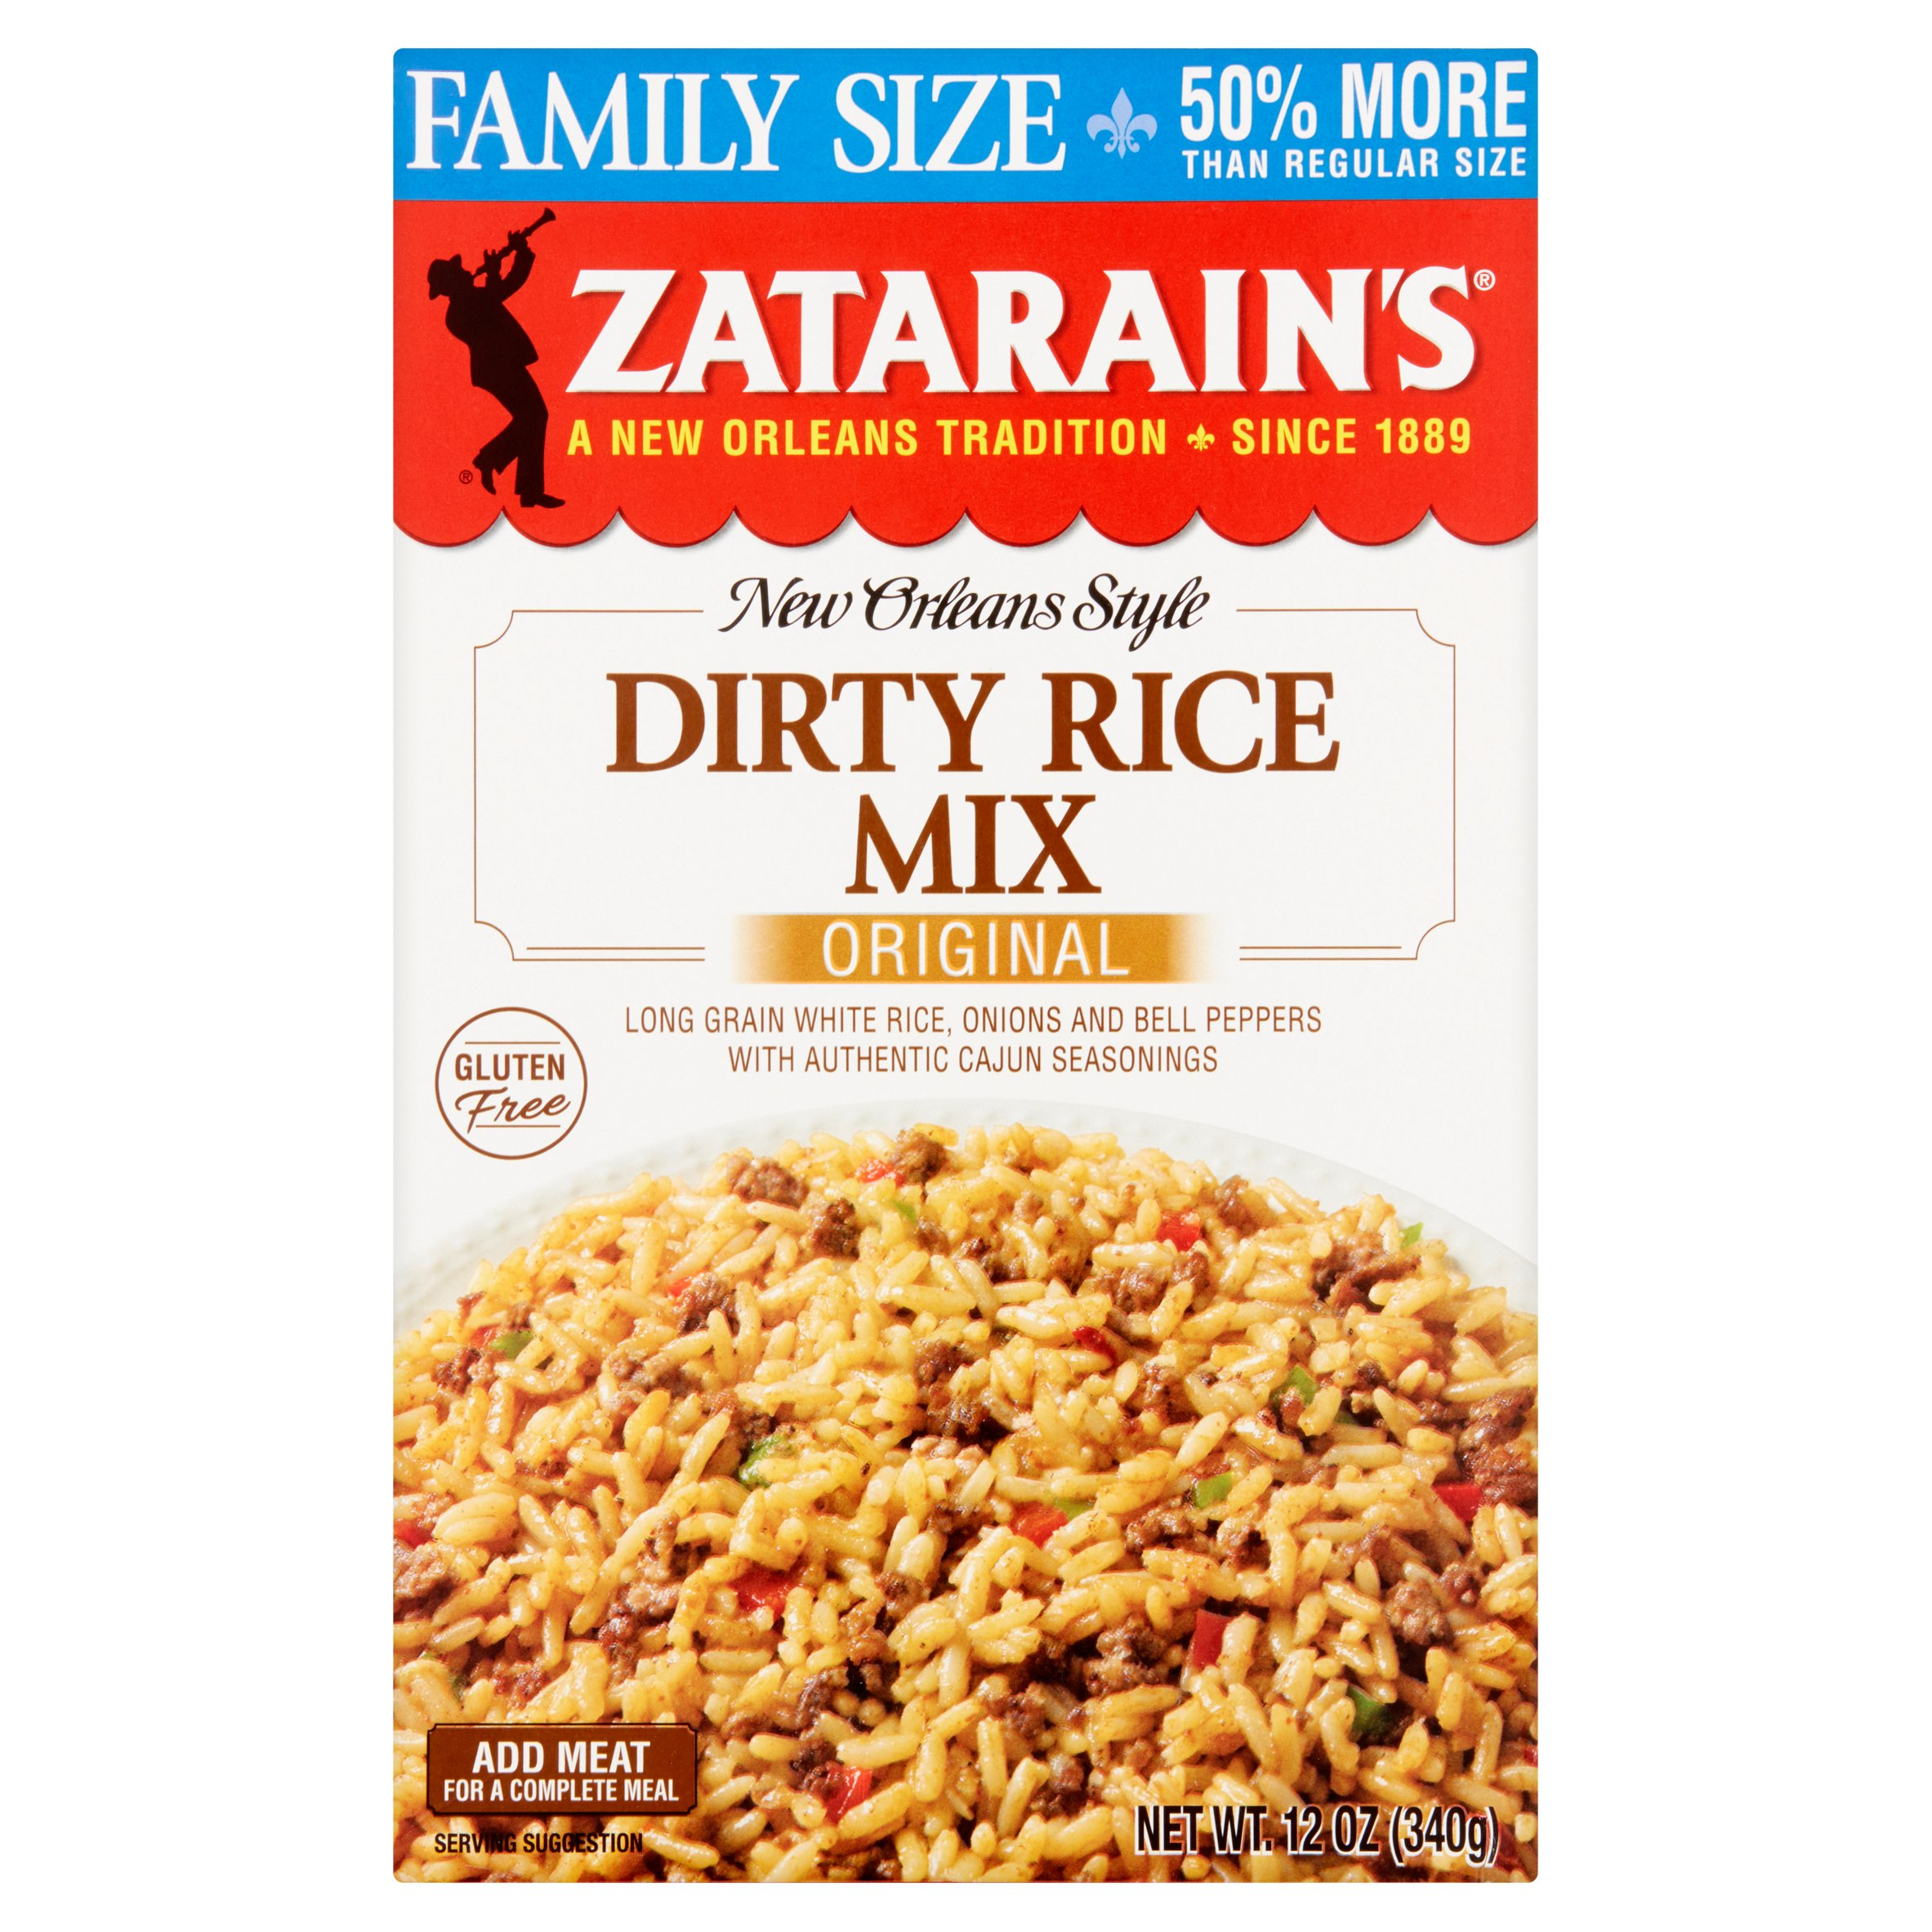 Zatarain's New Orleans Style Original Dirty Rice Mix Family Size, 12 oz